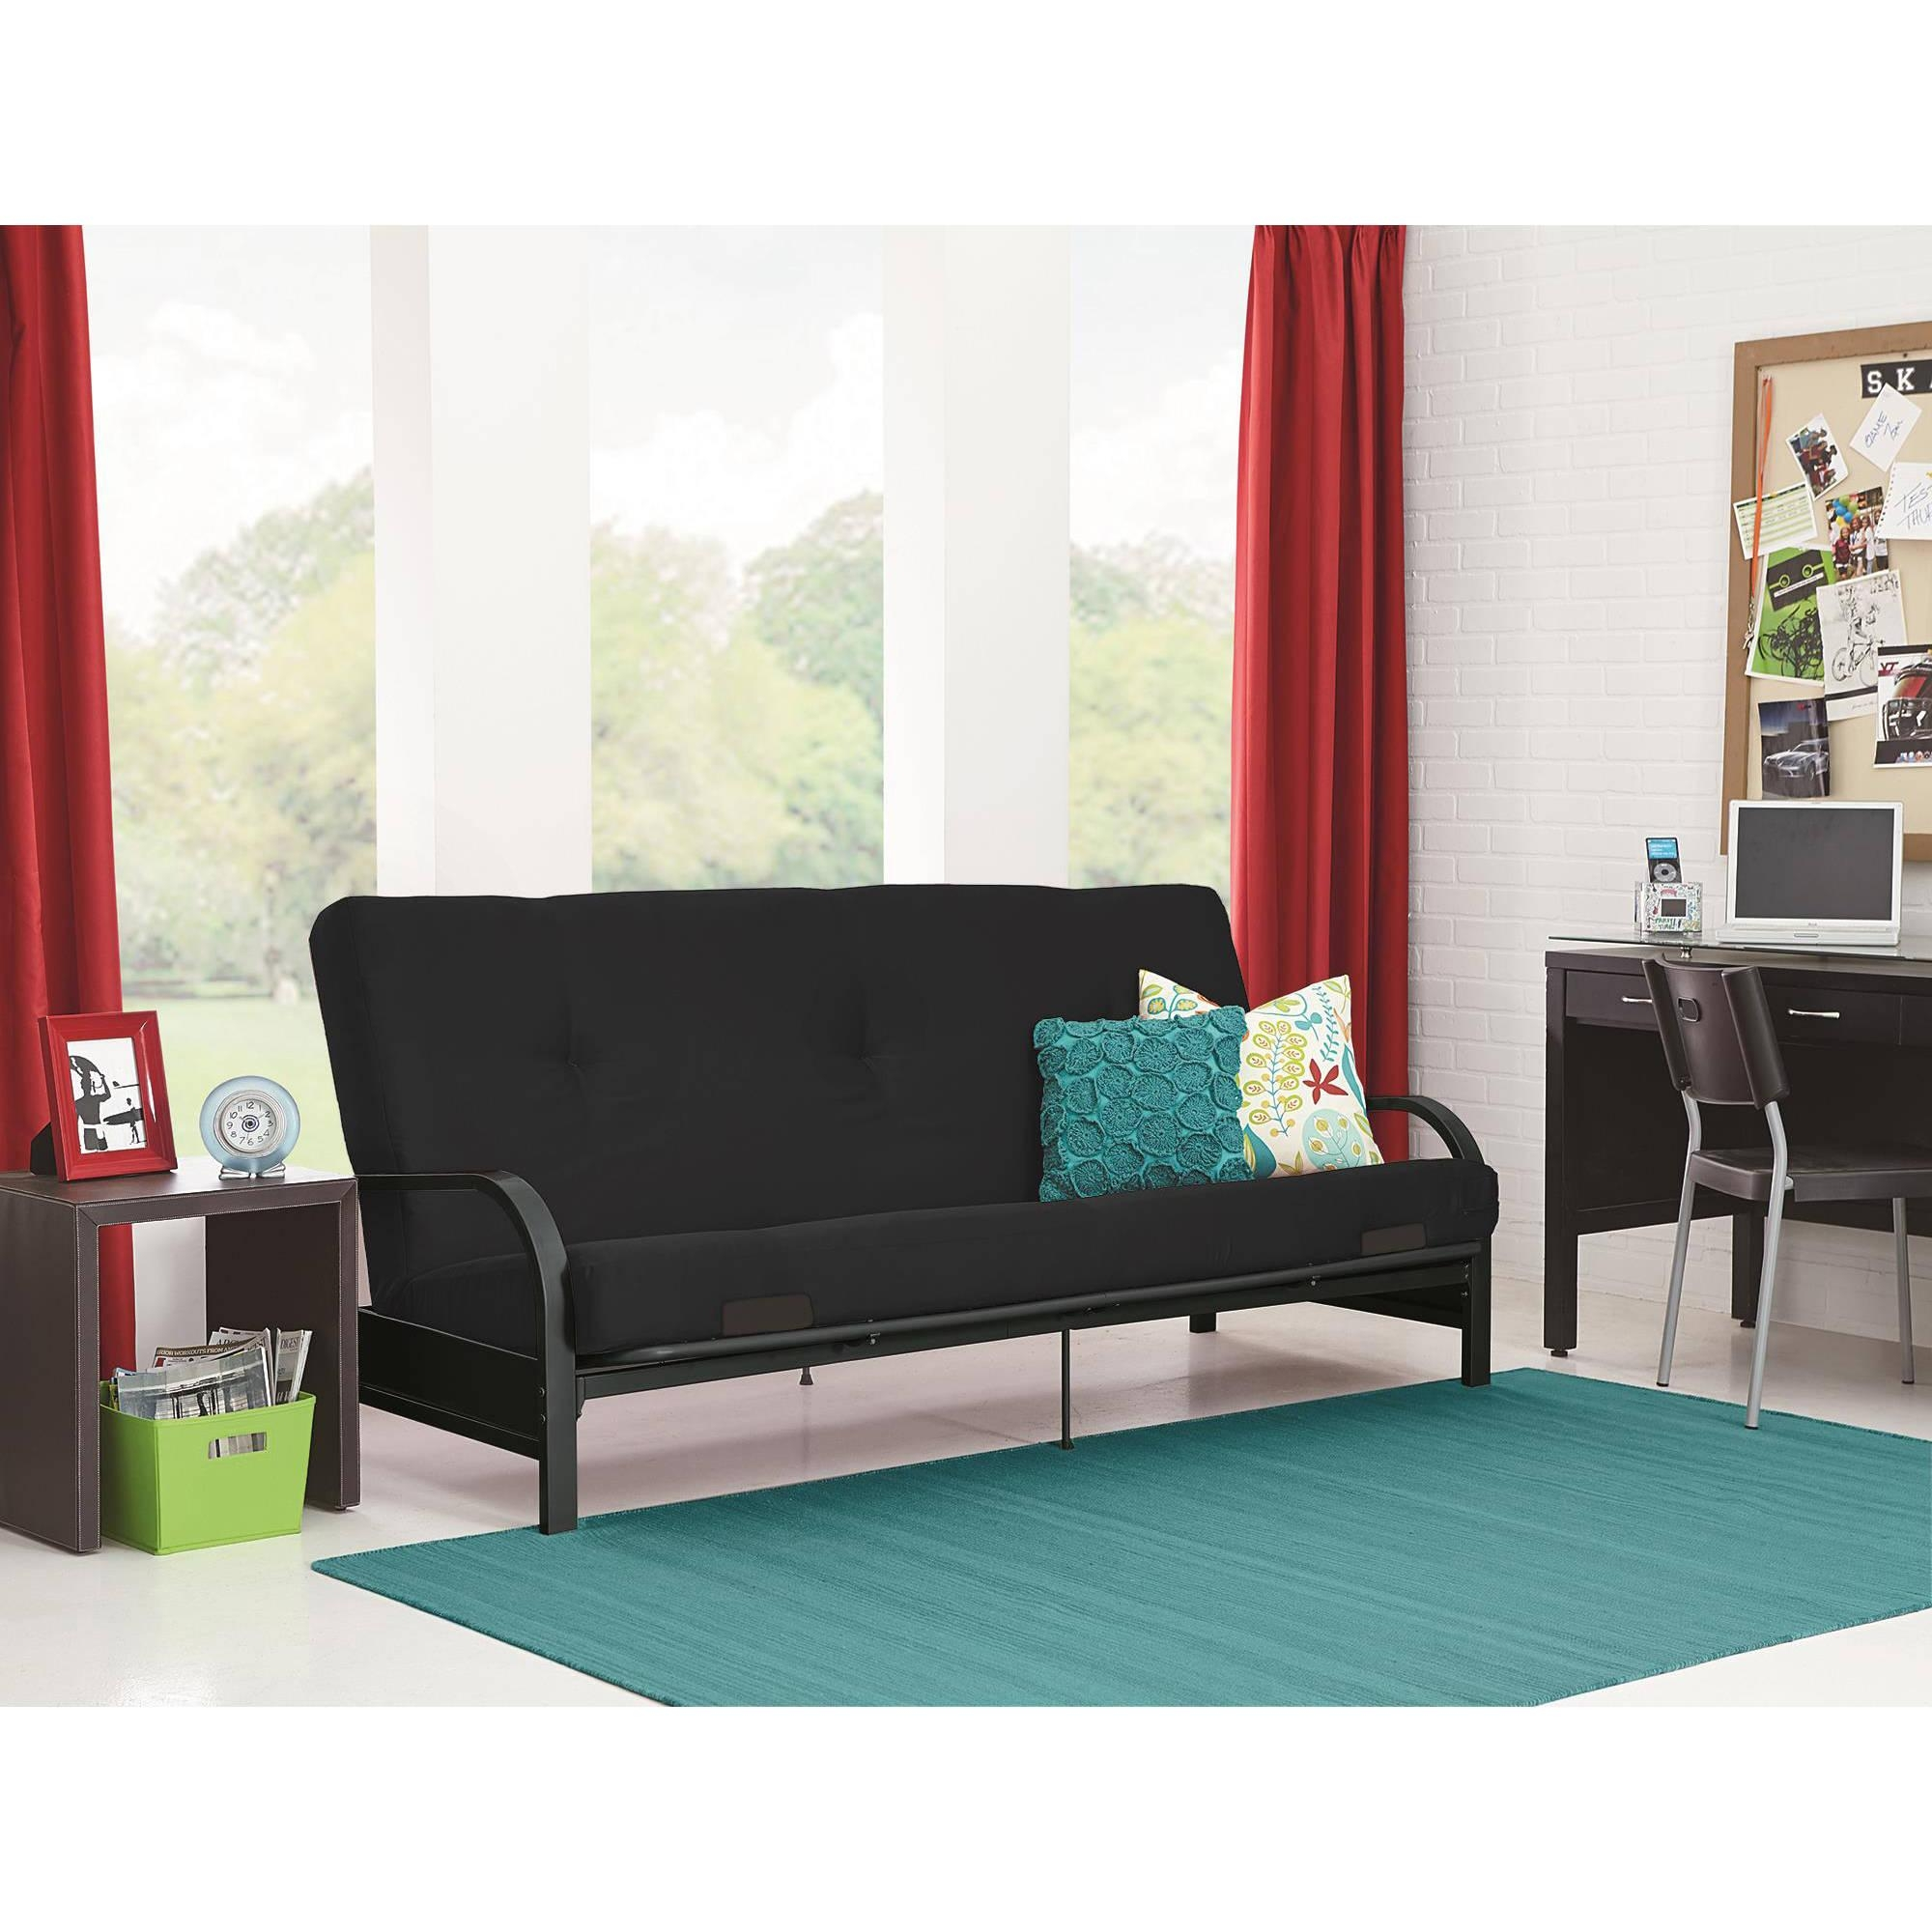 Sofa: Walmart Sofa Bed | Convertible Sofa Bed | Kmart Futons For Kmart Futon Beds (Image 20 of 20)